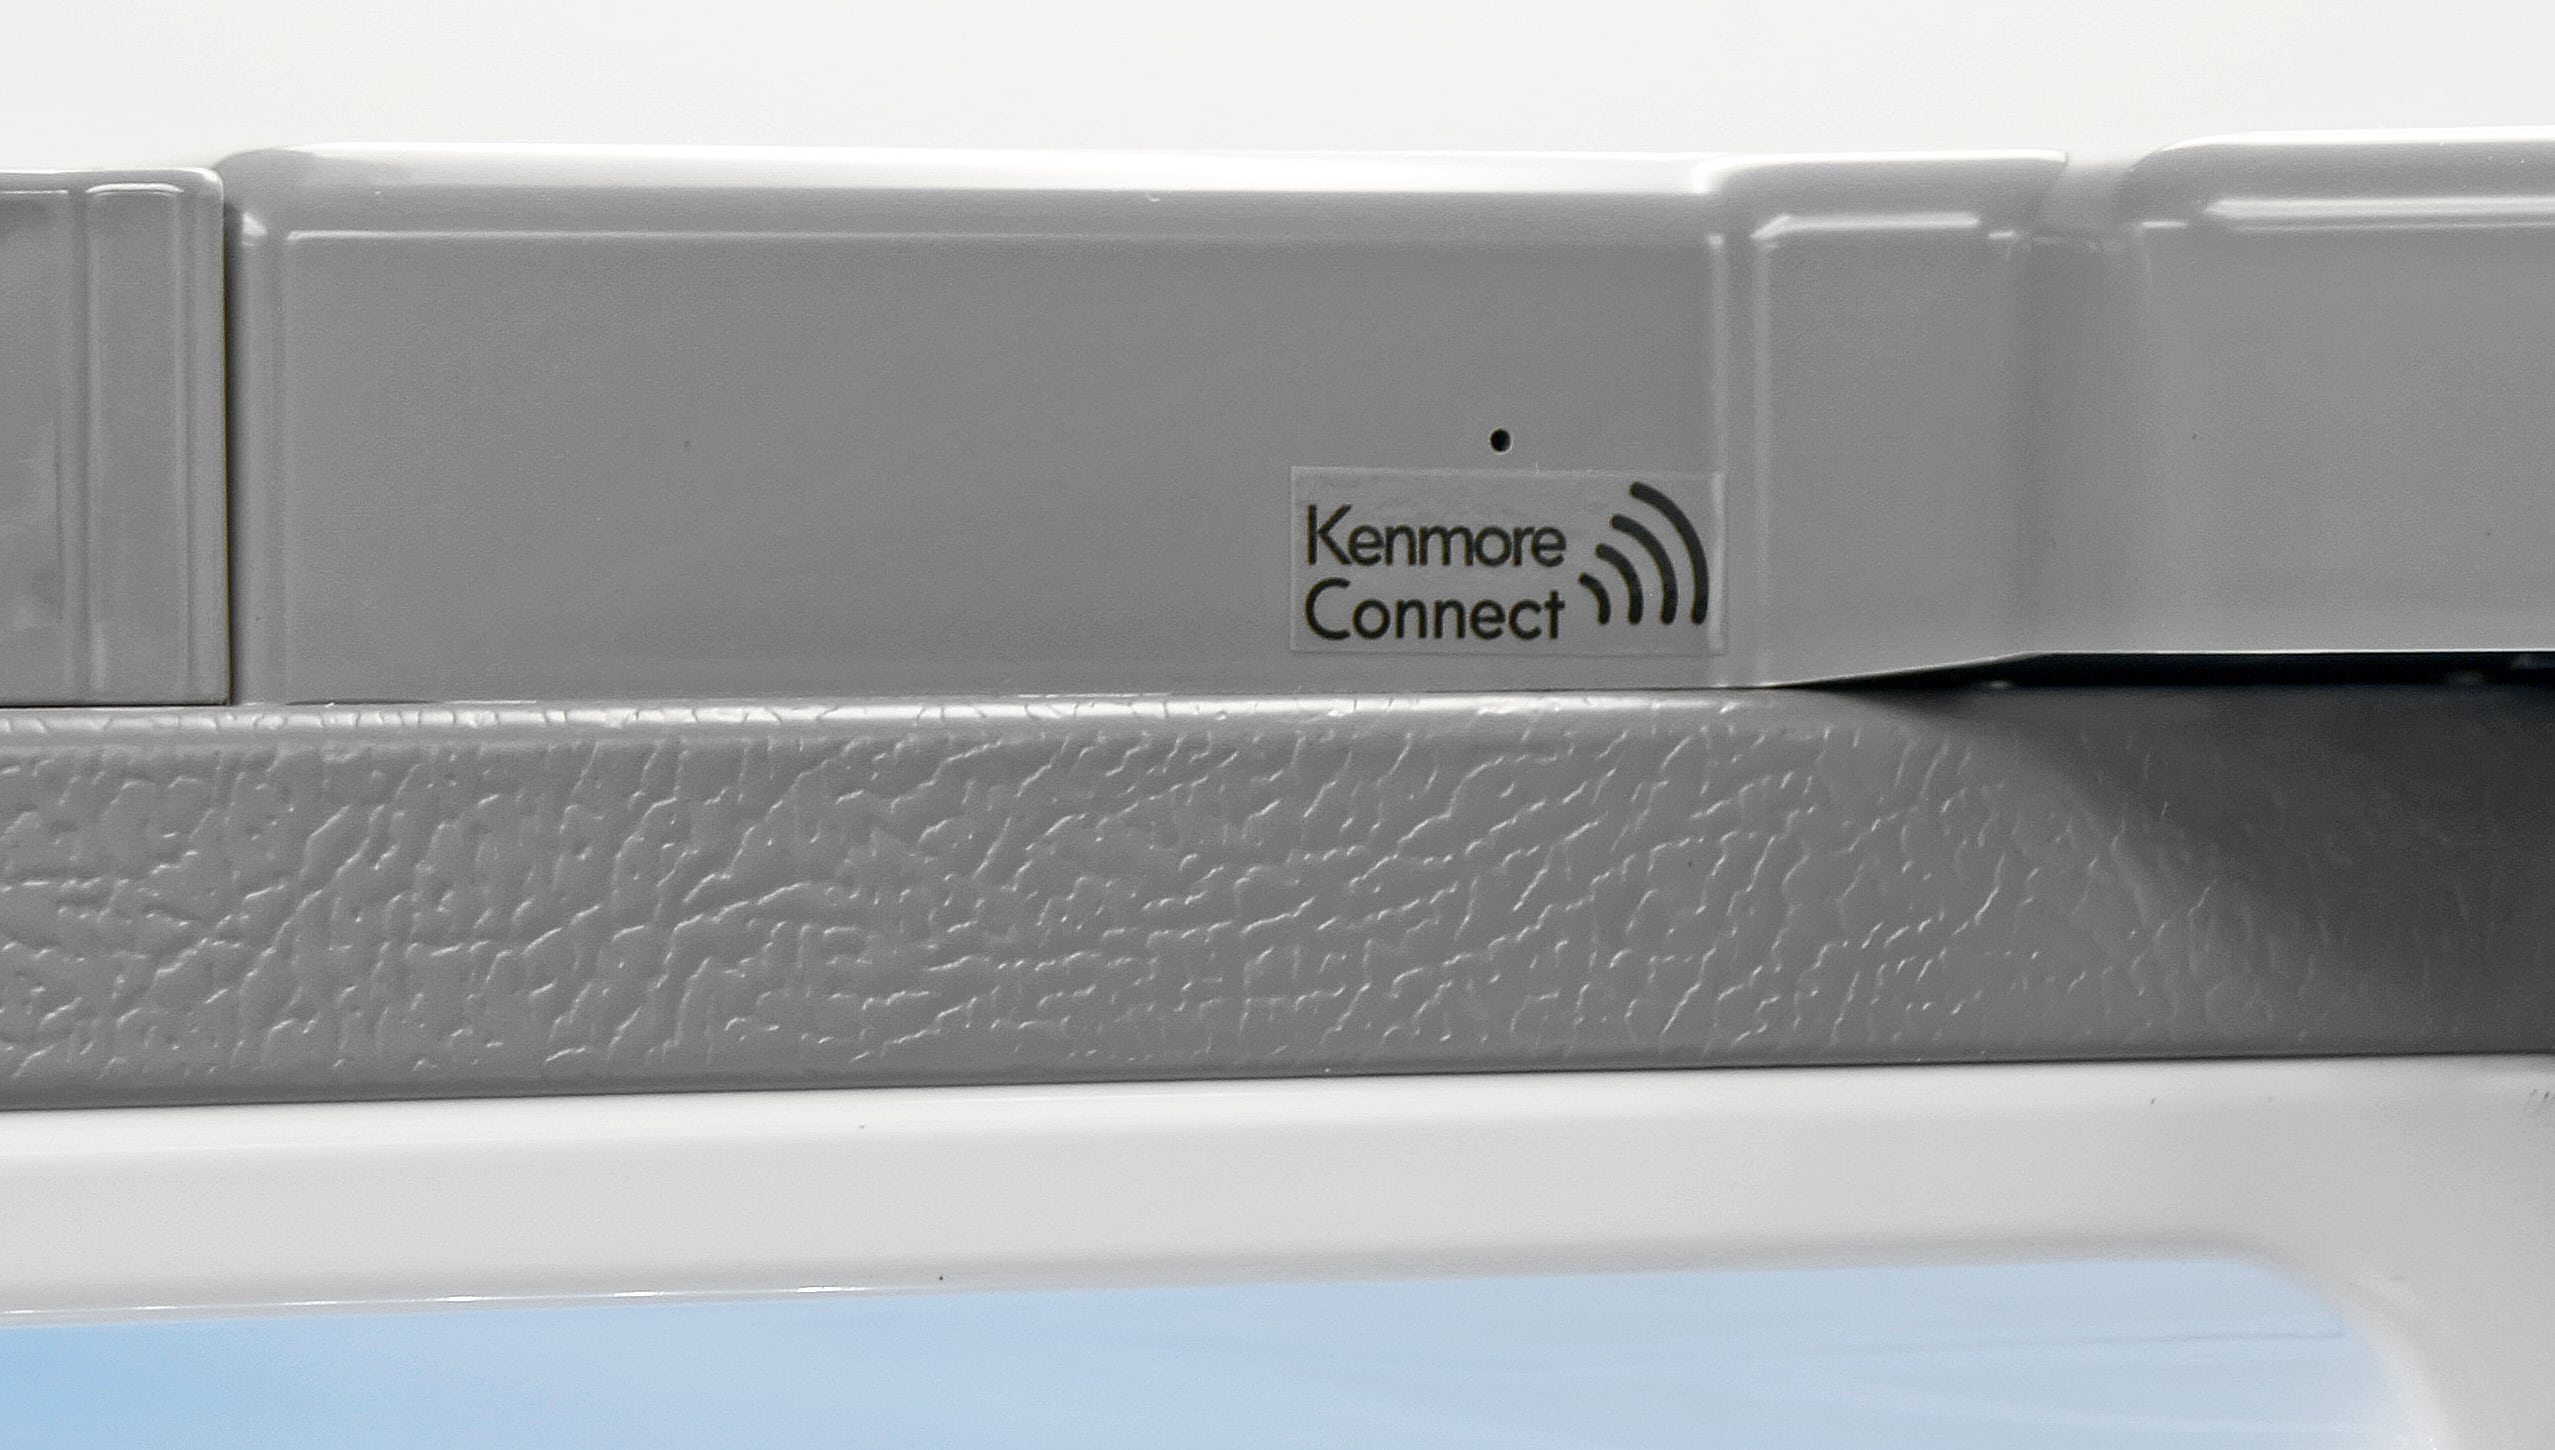 Kenmore Connect allows you to use a smart phone to diagnose any error codes that pop up on the Kenmore Elite 72483.